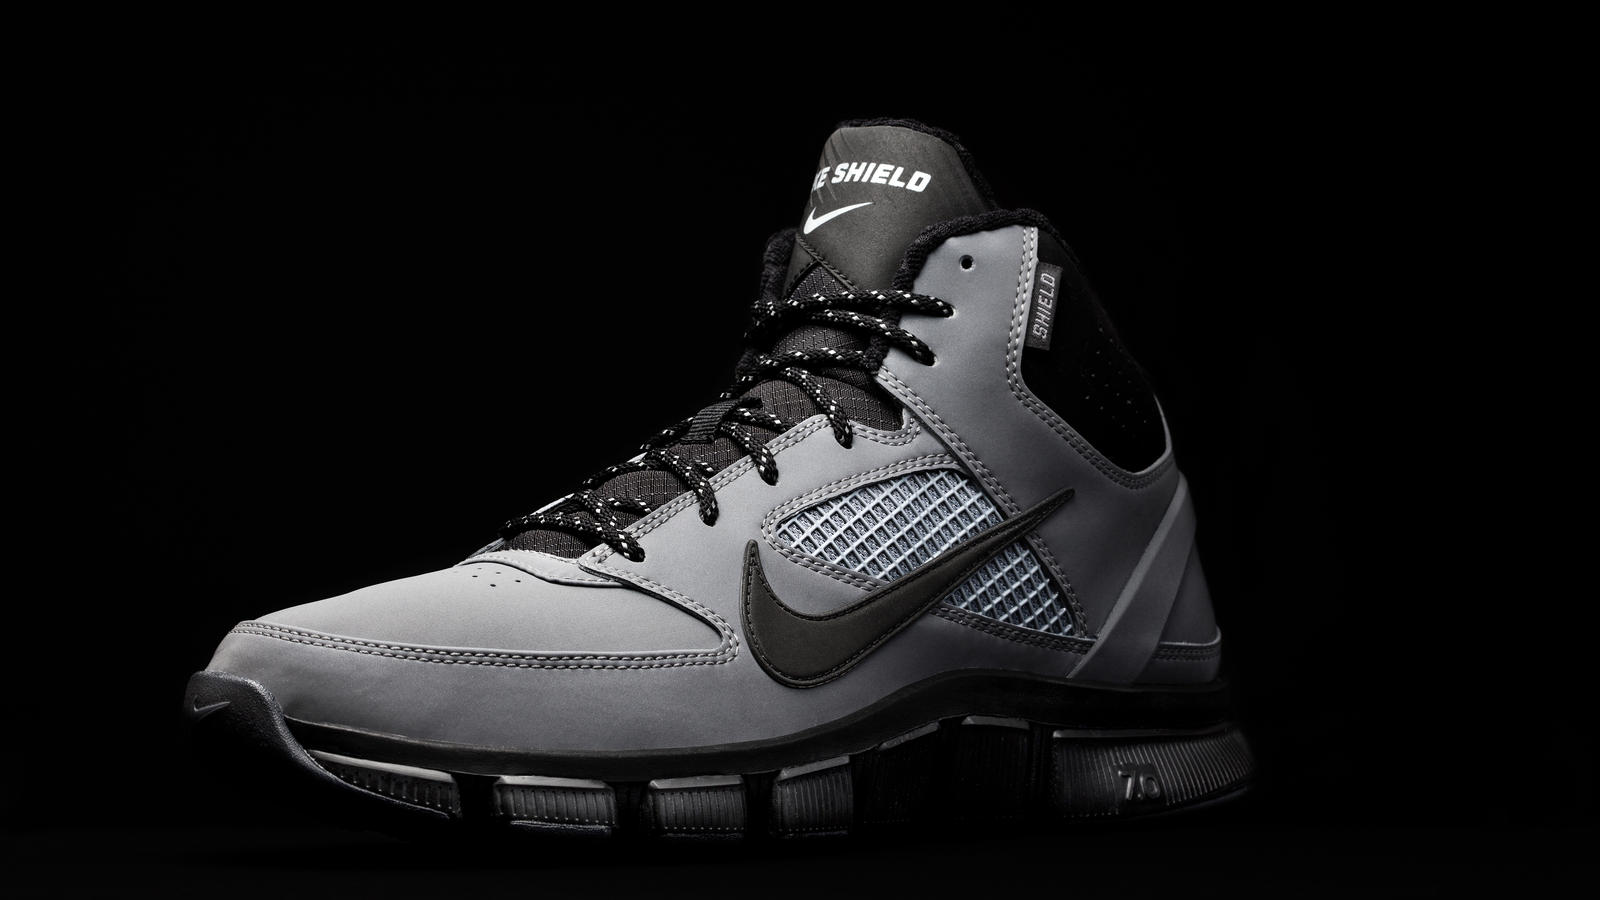 Introducing the Nike Free Trainer 7.0 Shield Nike News